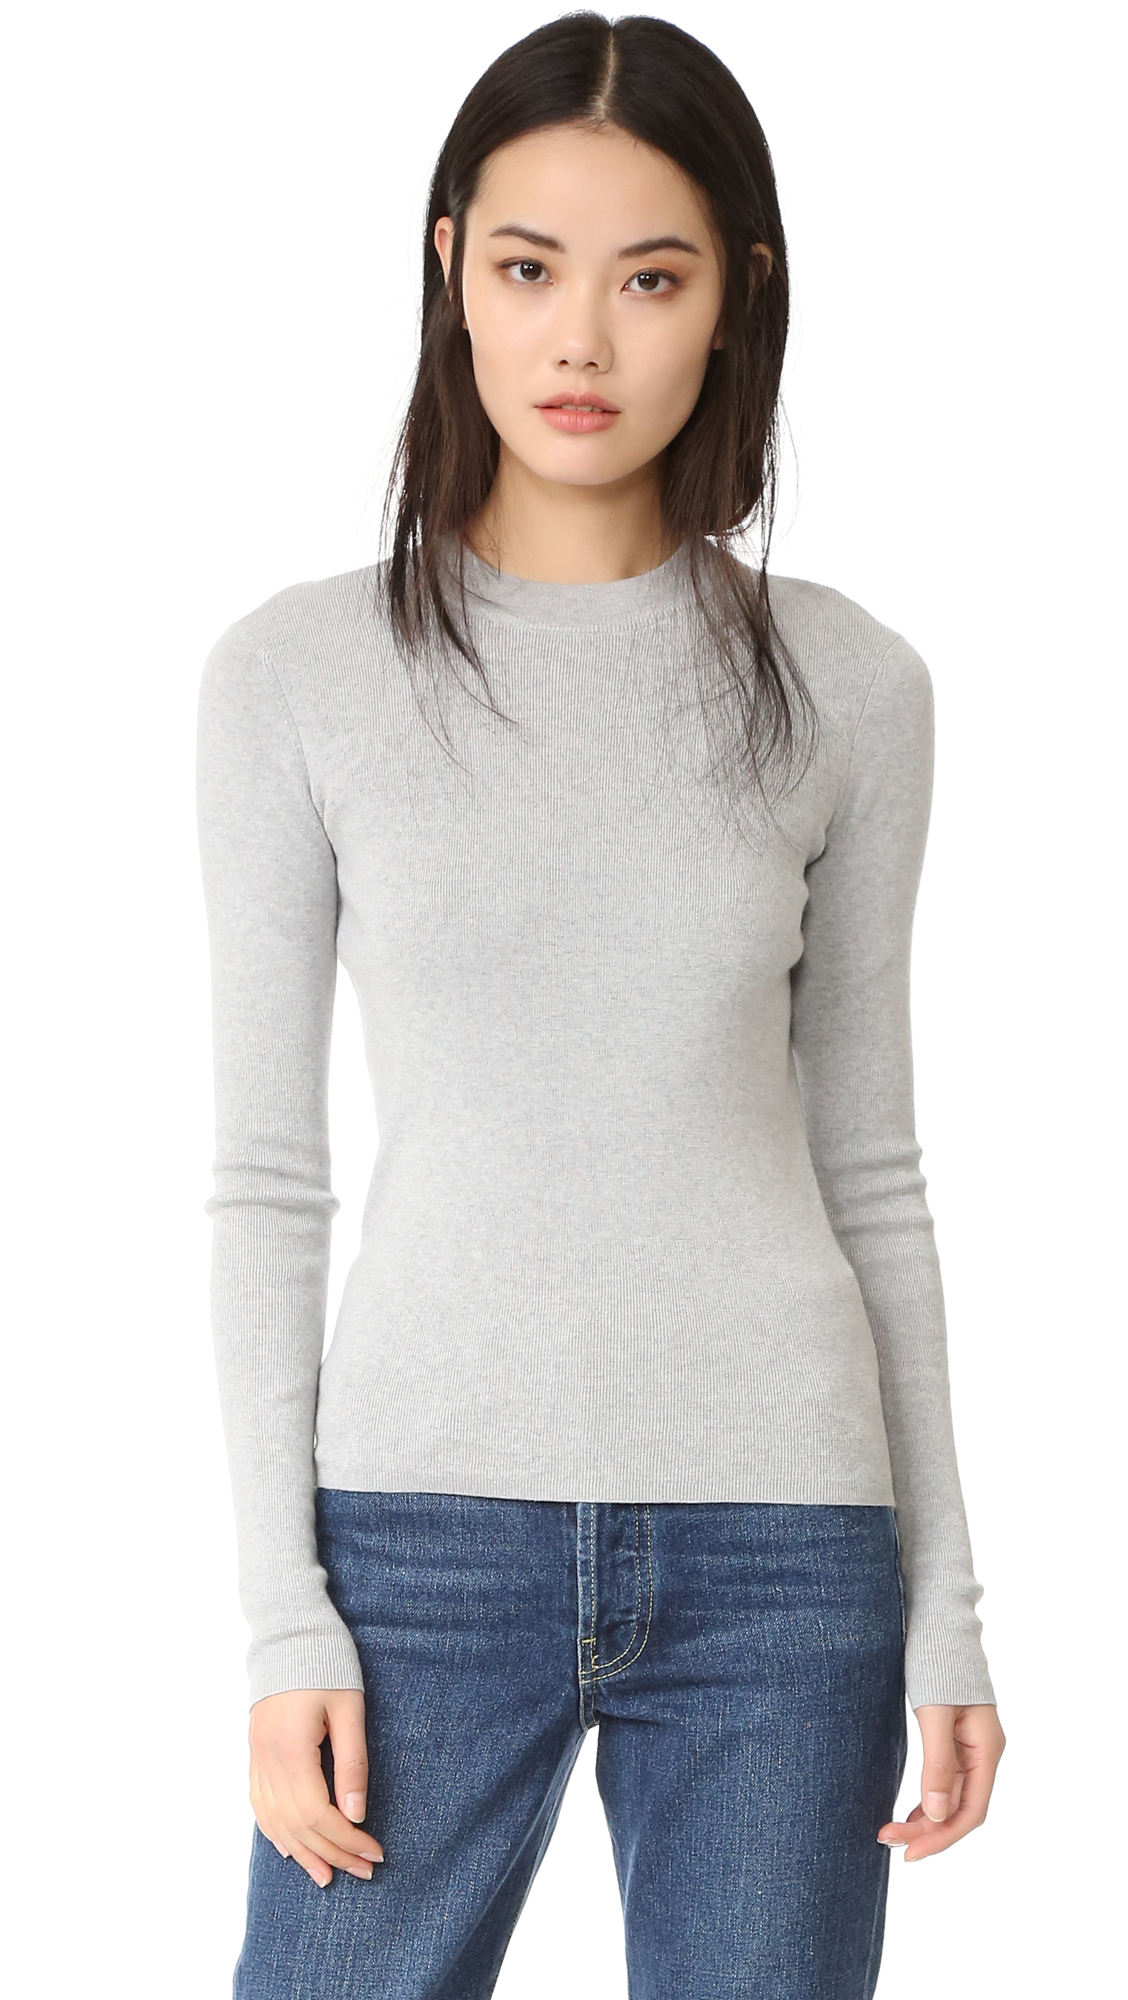 Ag Kendall Sweater - Heather Grey at Shopbop